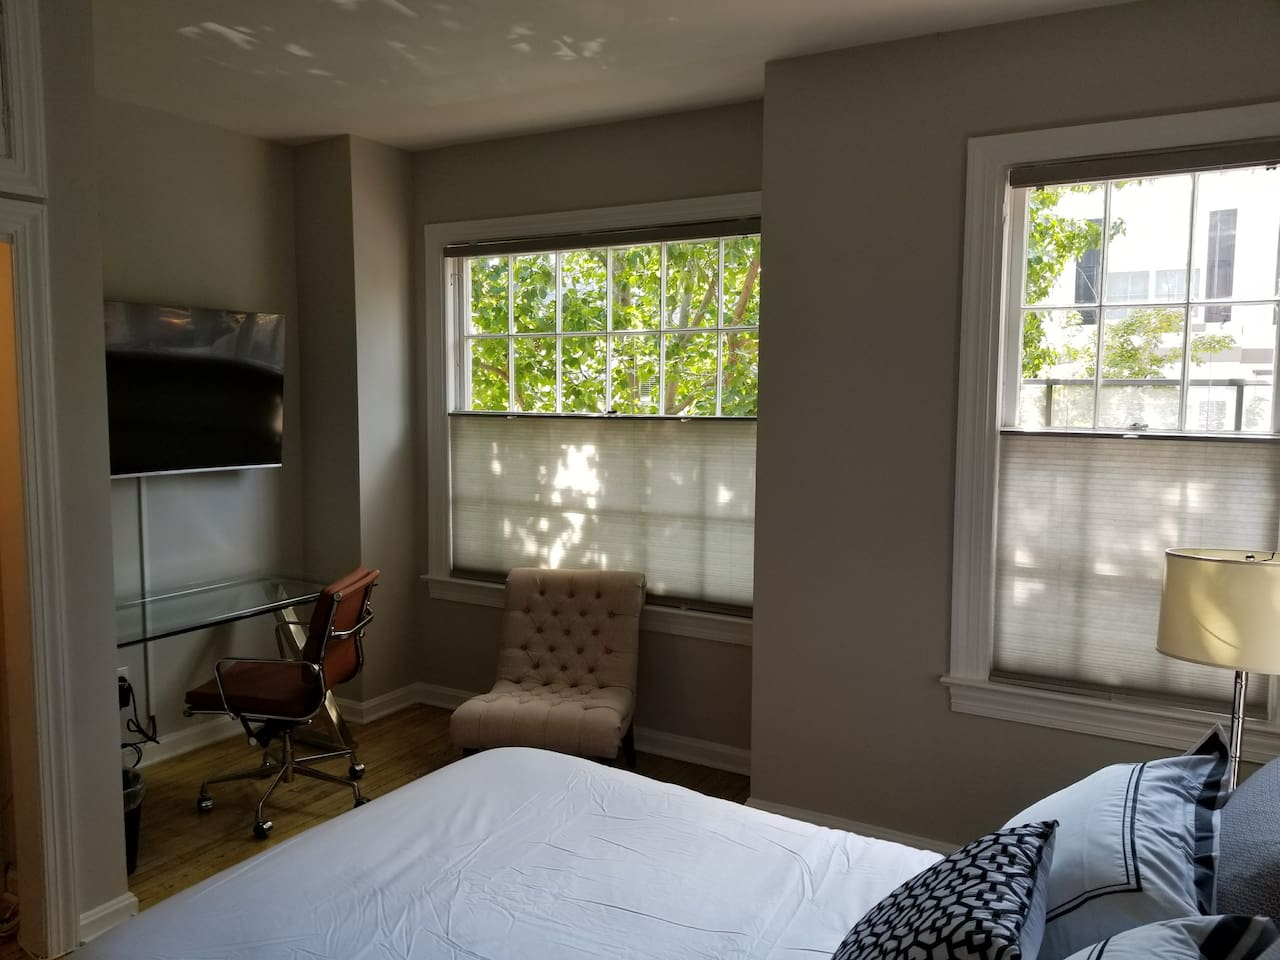 Heart of Georgetown BR: Work Desk, swivel chair, smart TV, comfort chair, and west windows partially shaded.